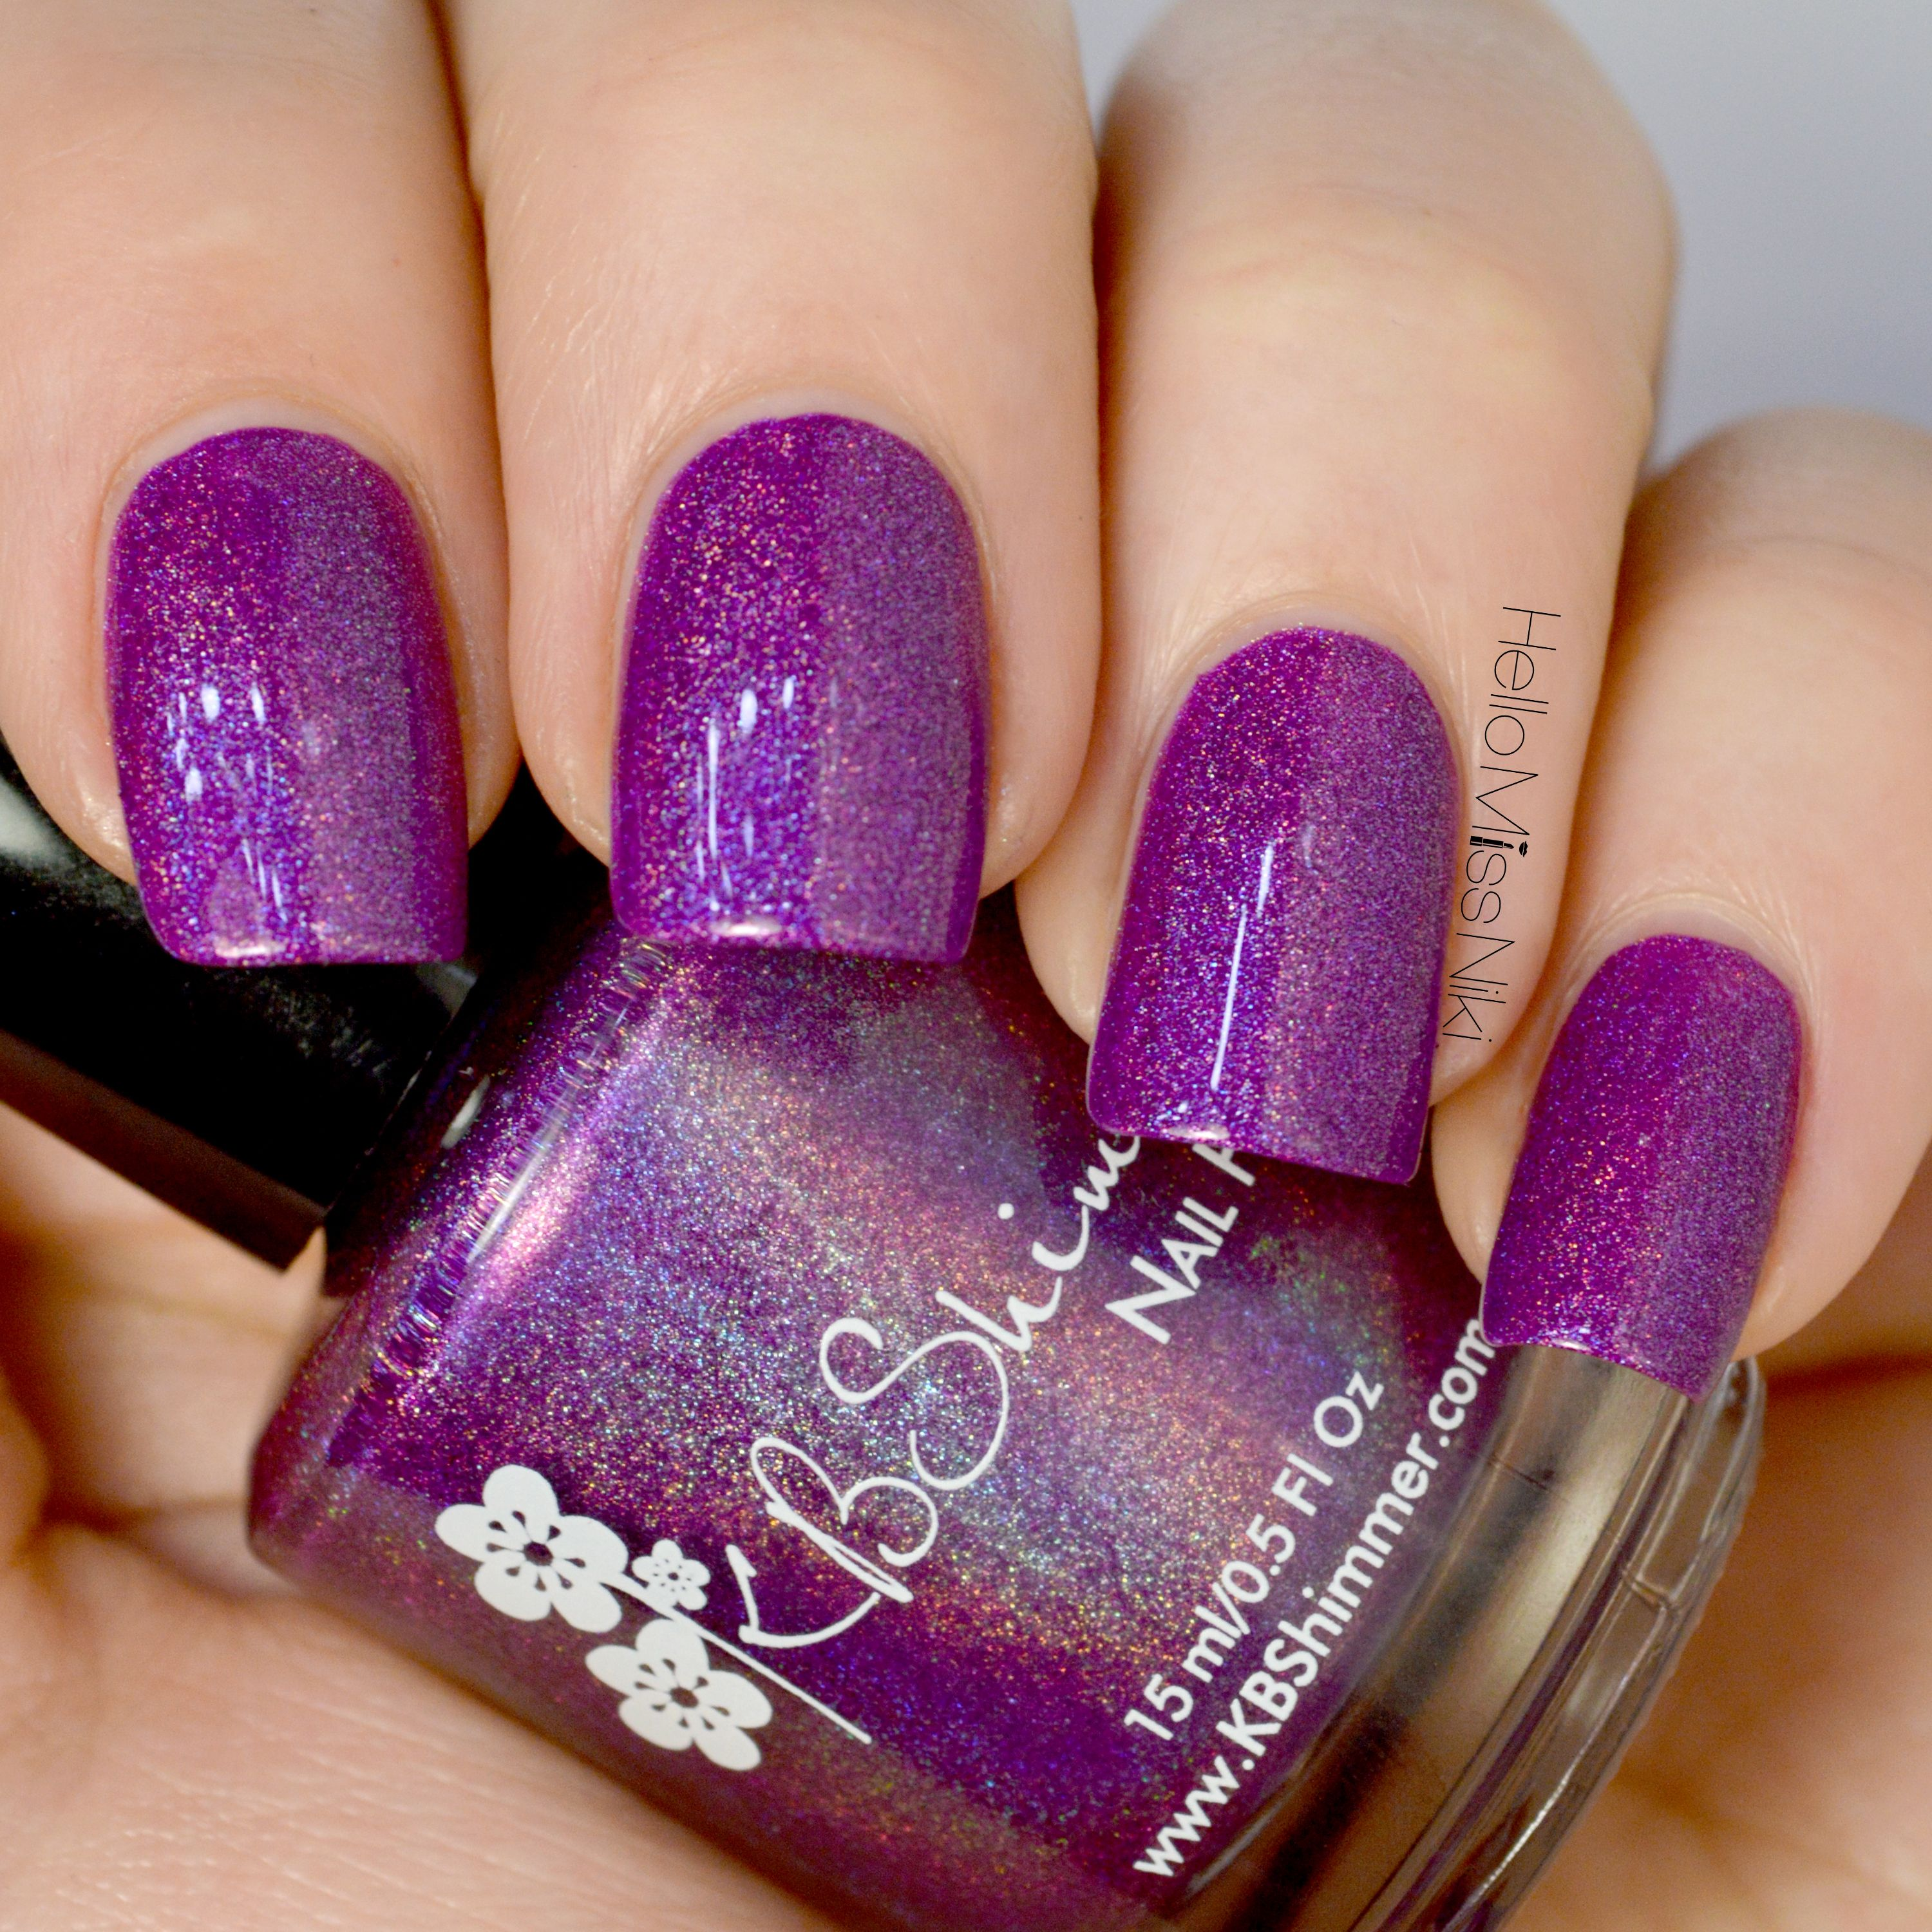 KBShimmer Fall 2016 Collection - Orchidding Me? | Nails | Pinterest ...